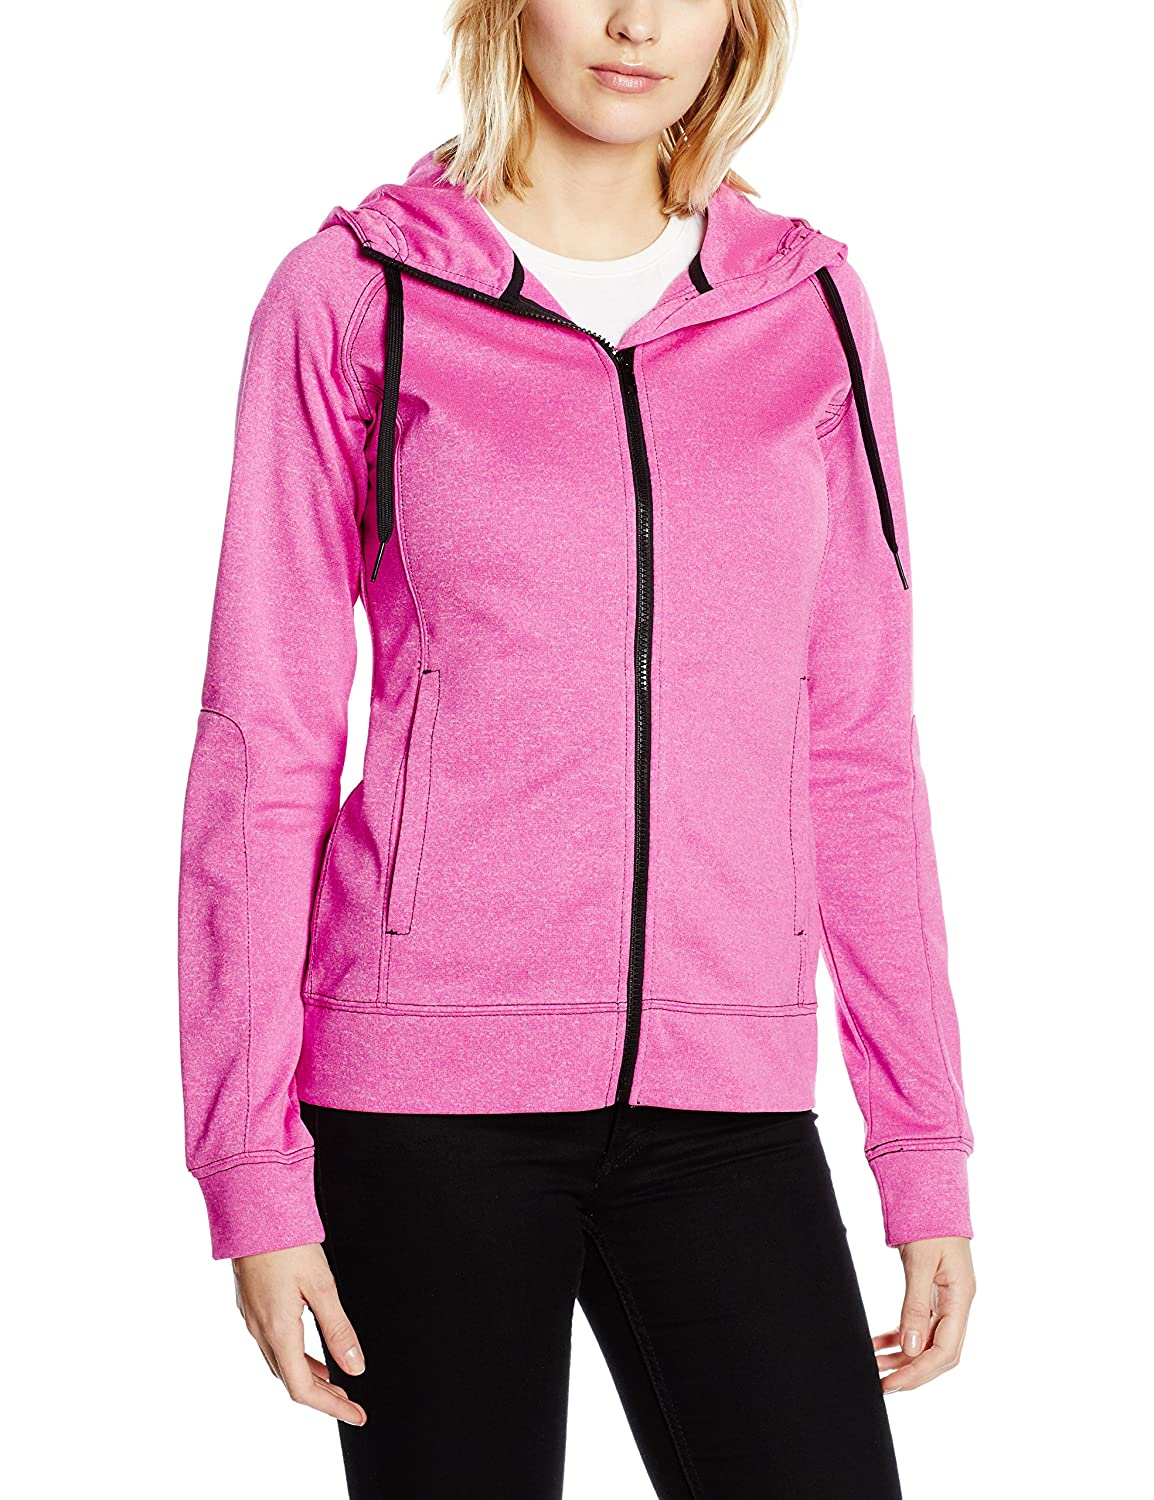 Active Stedman Donna JacketSt5930 Performance Apparel Felpa 0qxqfvP